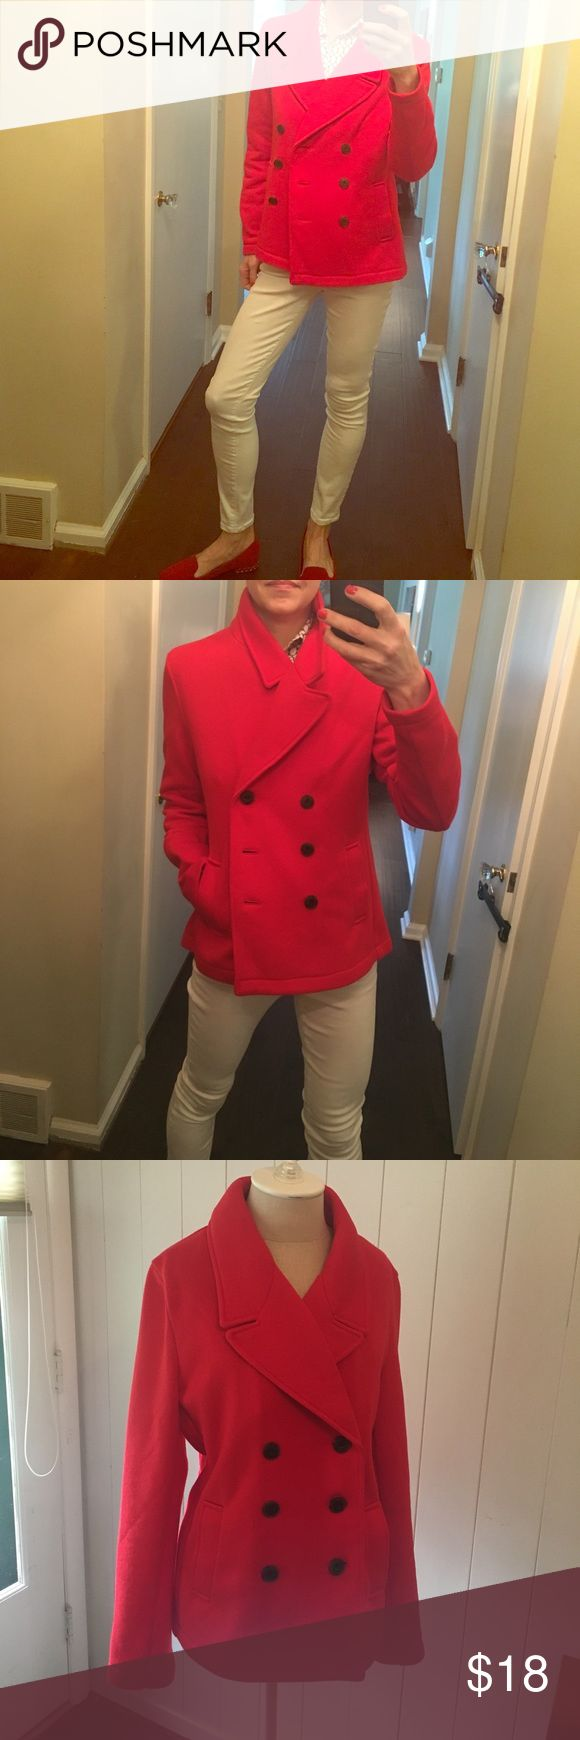 Lightweight Red Pea Coat, size L NWOT Cherry red, sweater/fleece-like material, never worn darling jacket! Old Navy Jackets & Coats Pea Coats